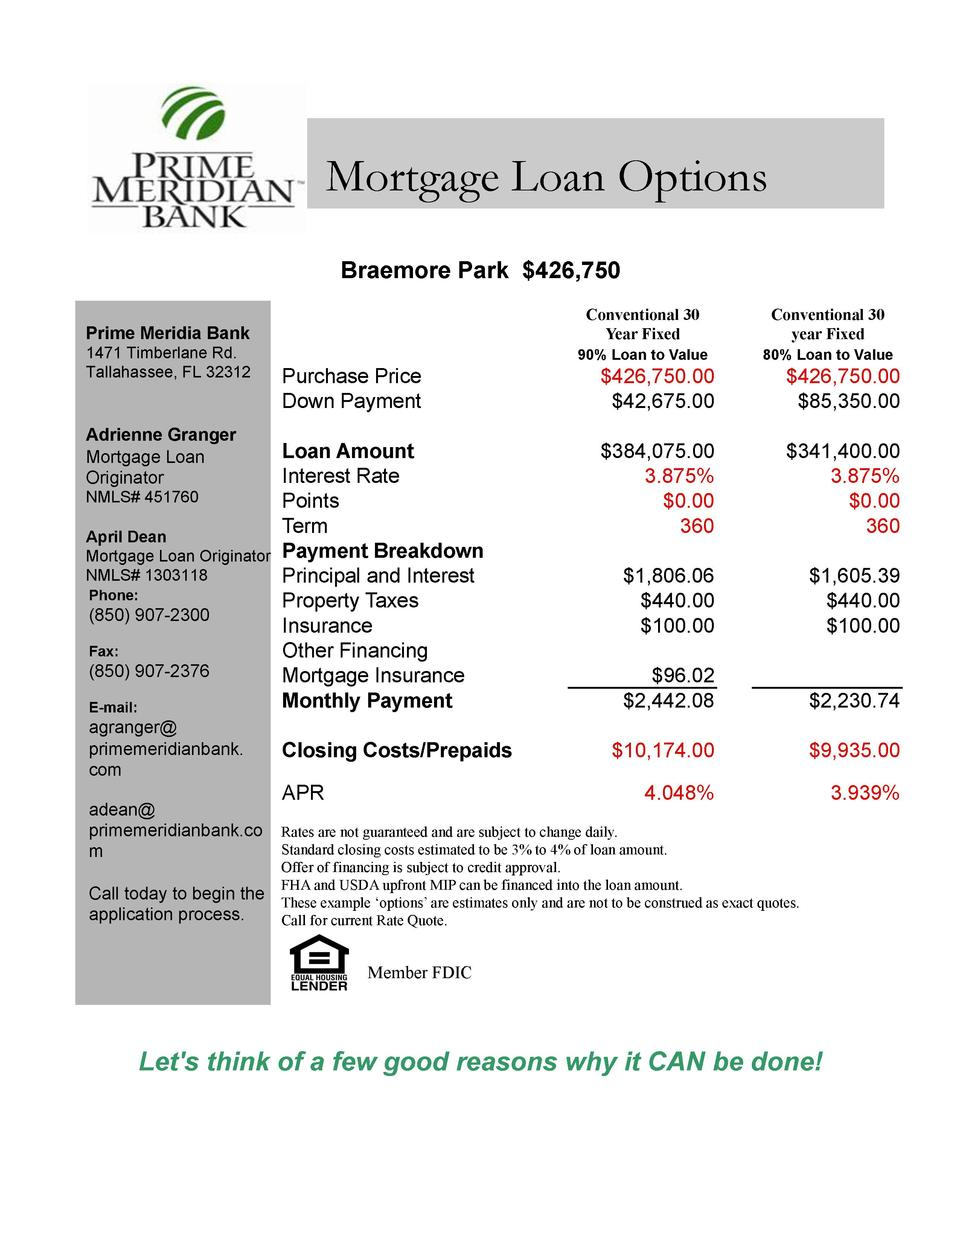 Mortgage Loan Options Braemore Park  426,750 Prime Meridia Bank 1471 Timberlane Rd. Tallahassee, FL 32312  Adrienne Grange...